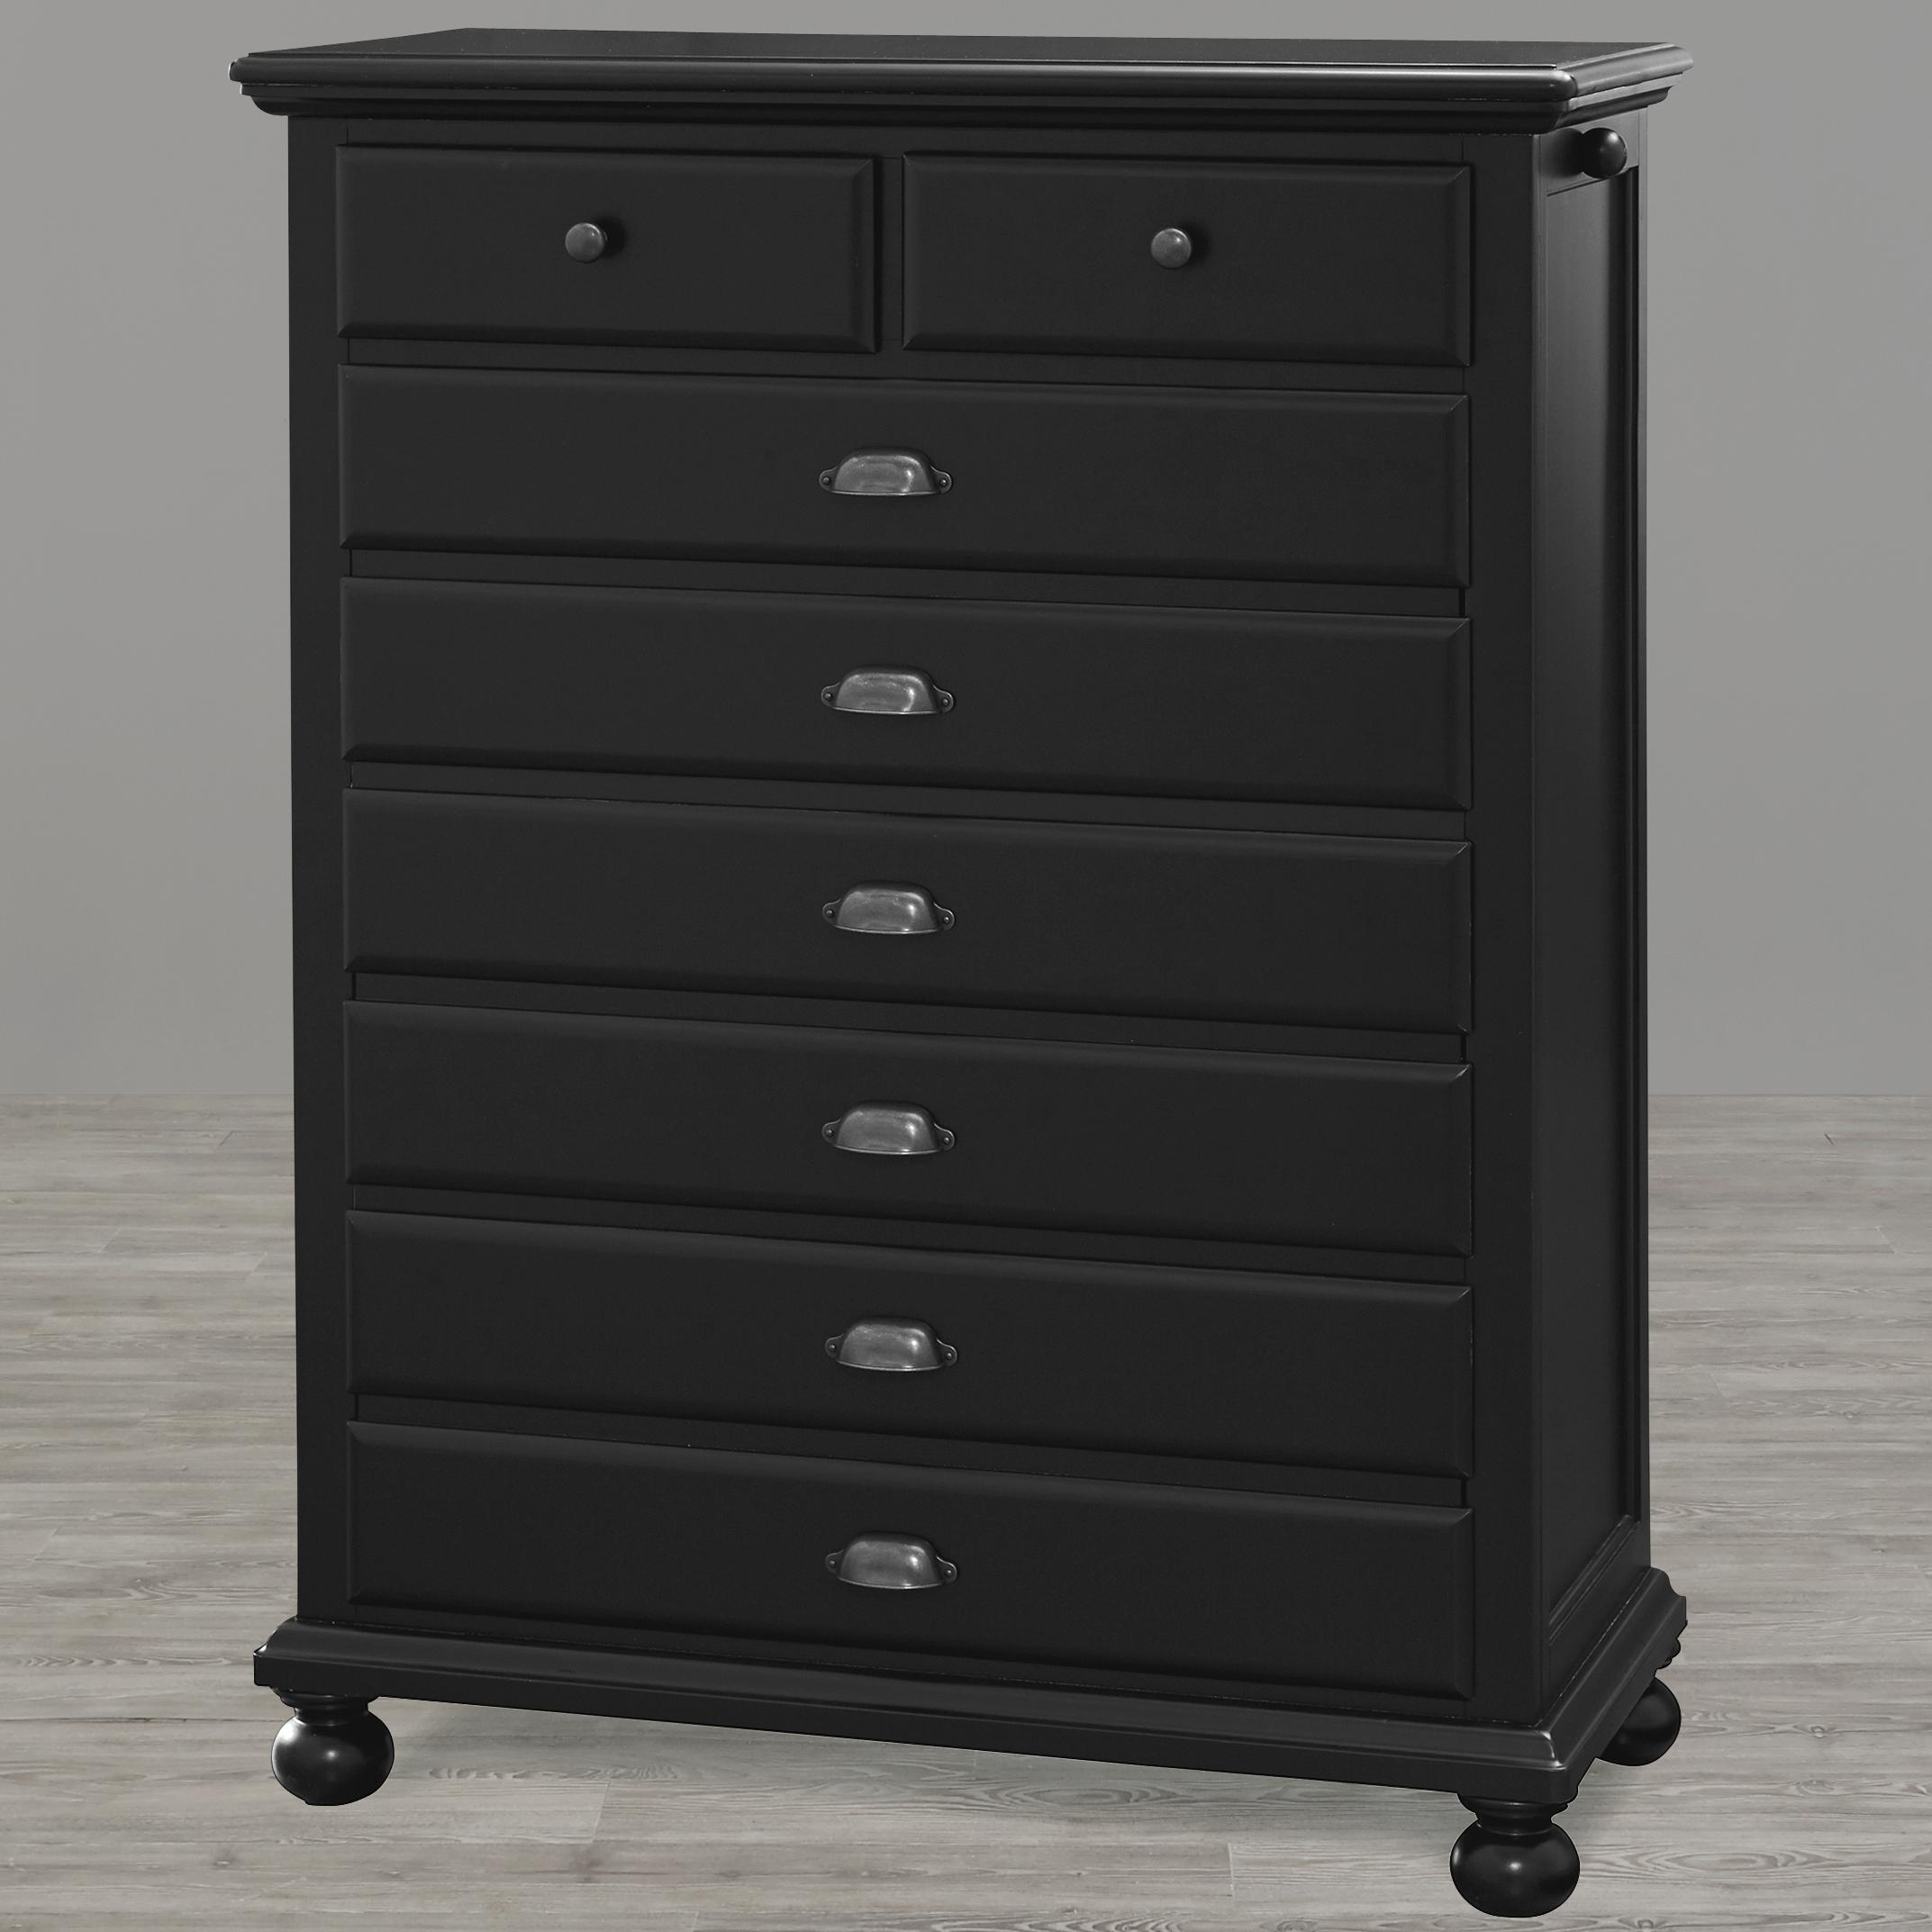 Smartstuff Black and White Drawer Chest - Item Number: 437B012